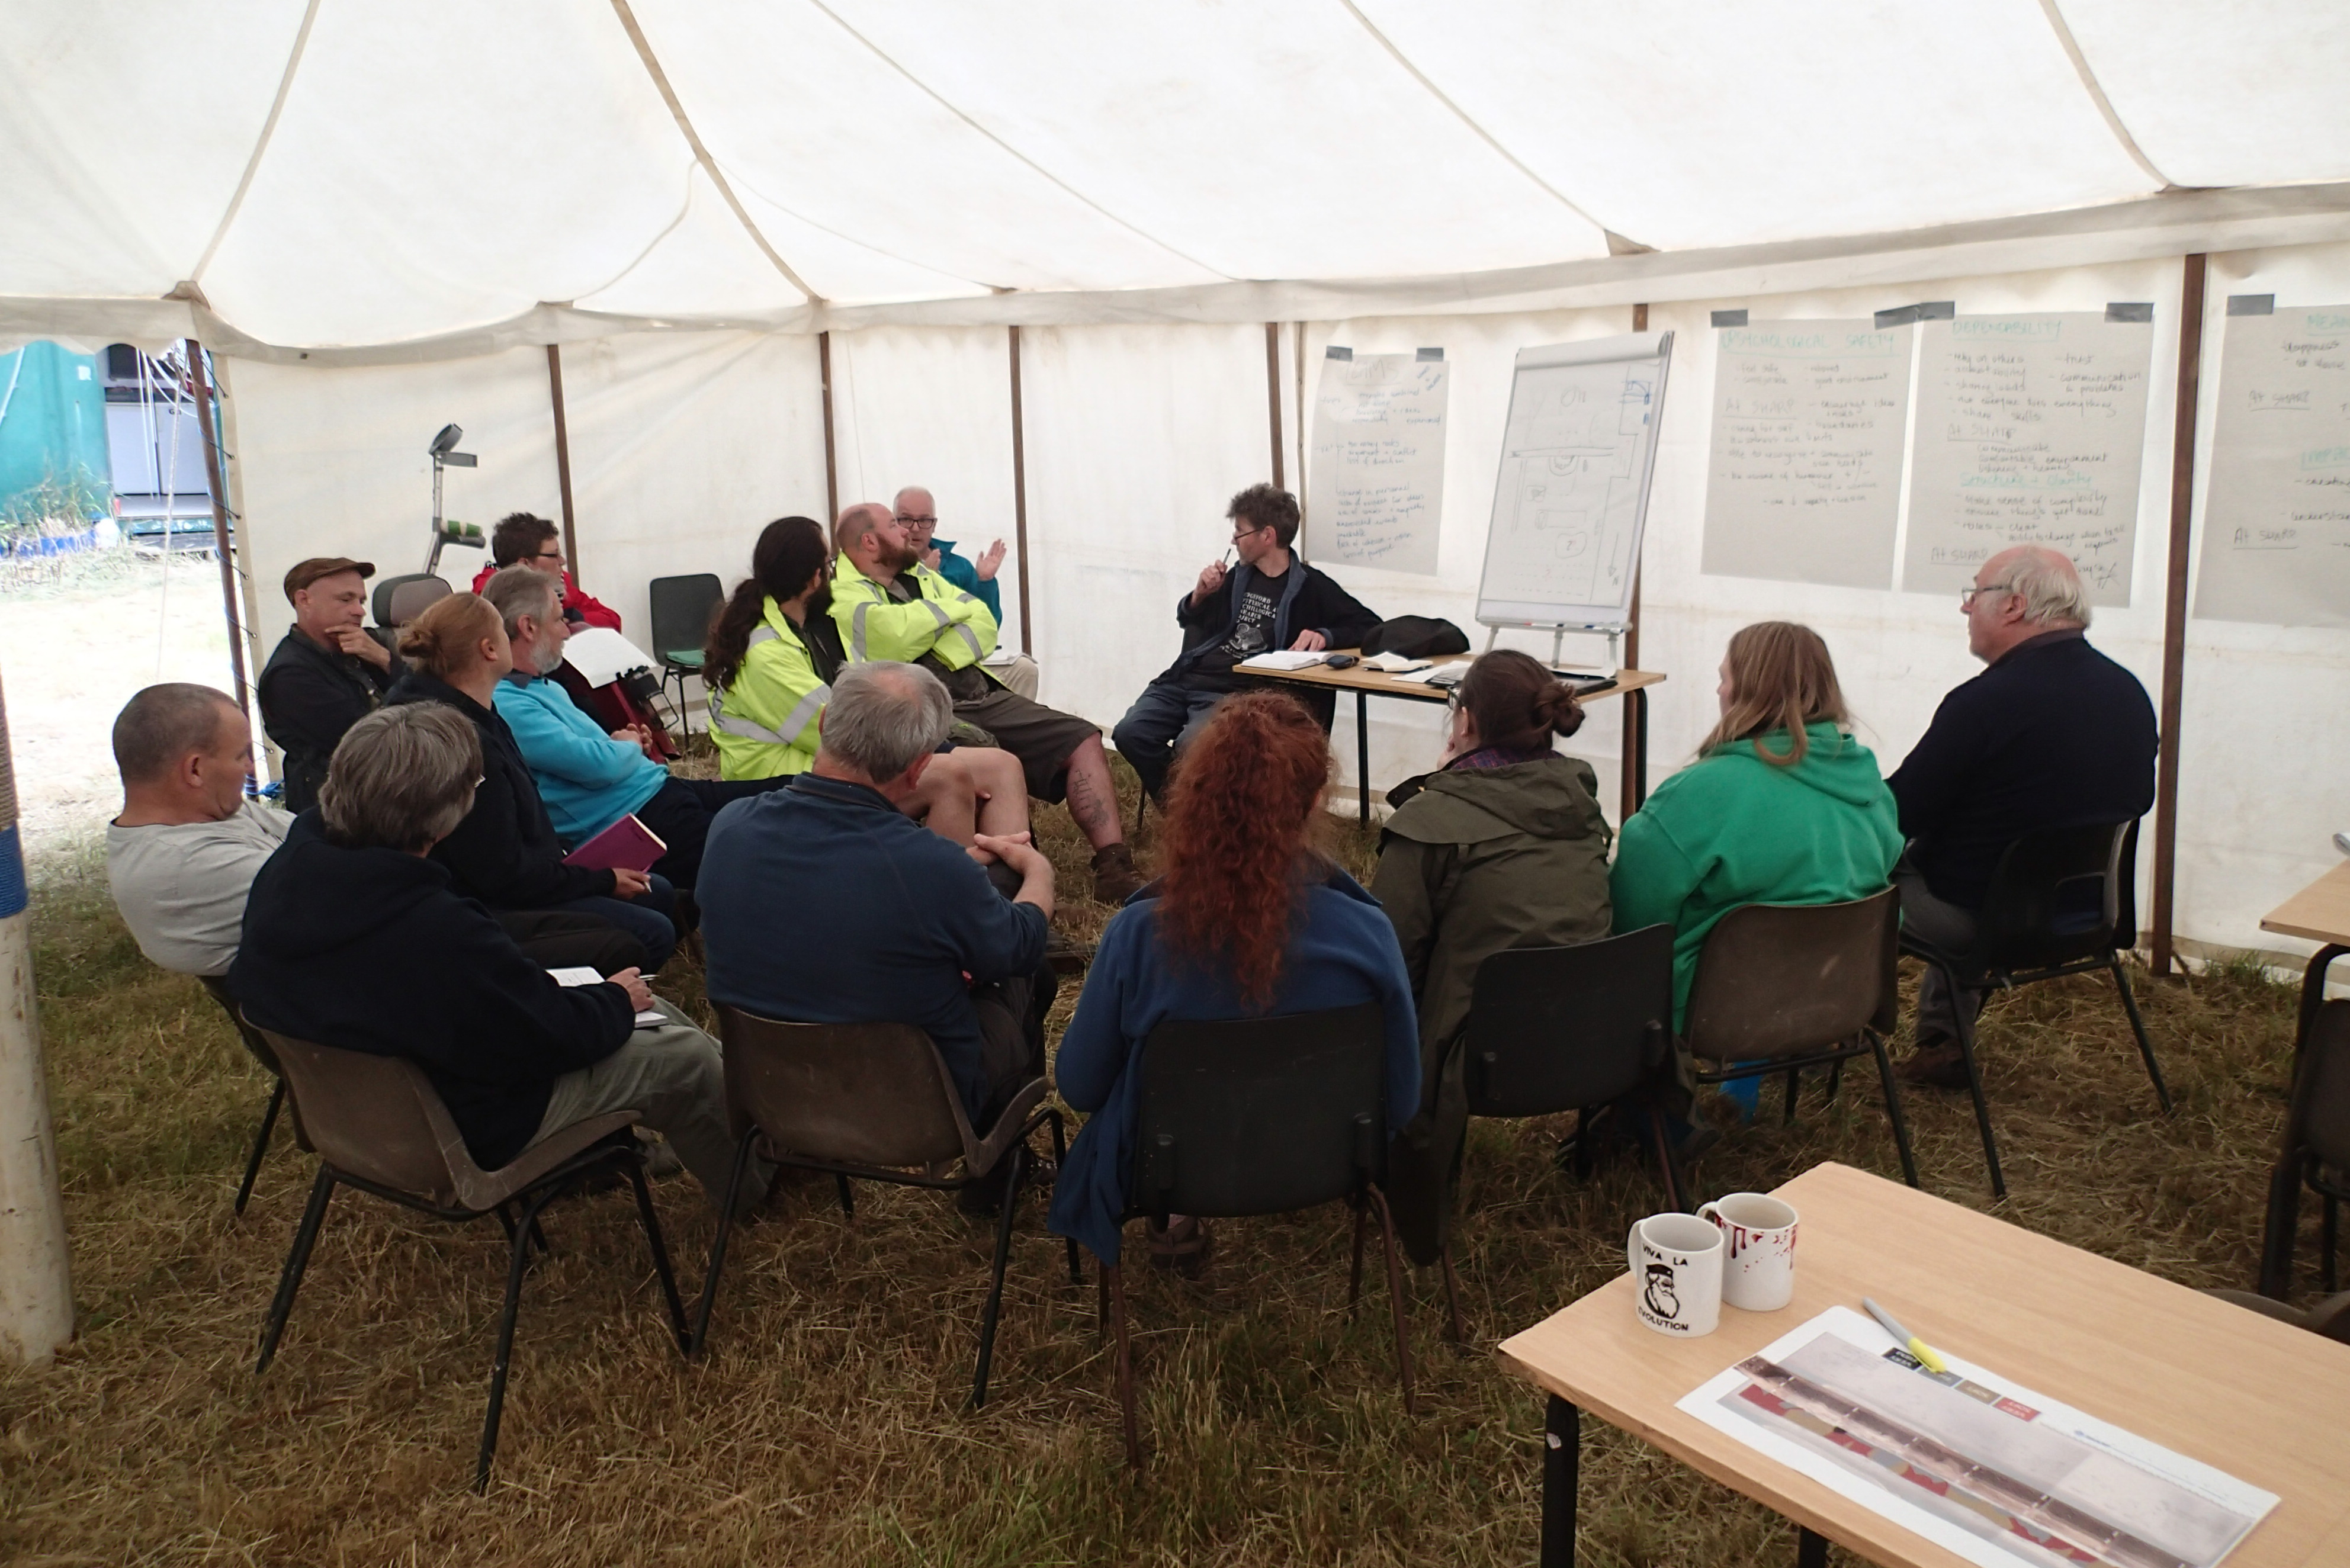 Friday: the Trench 23 (T23) team meet